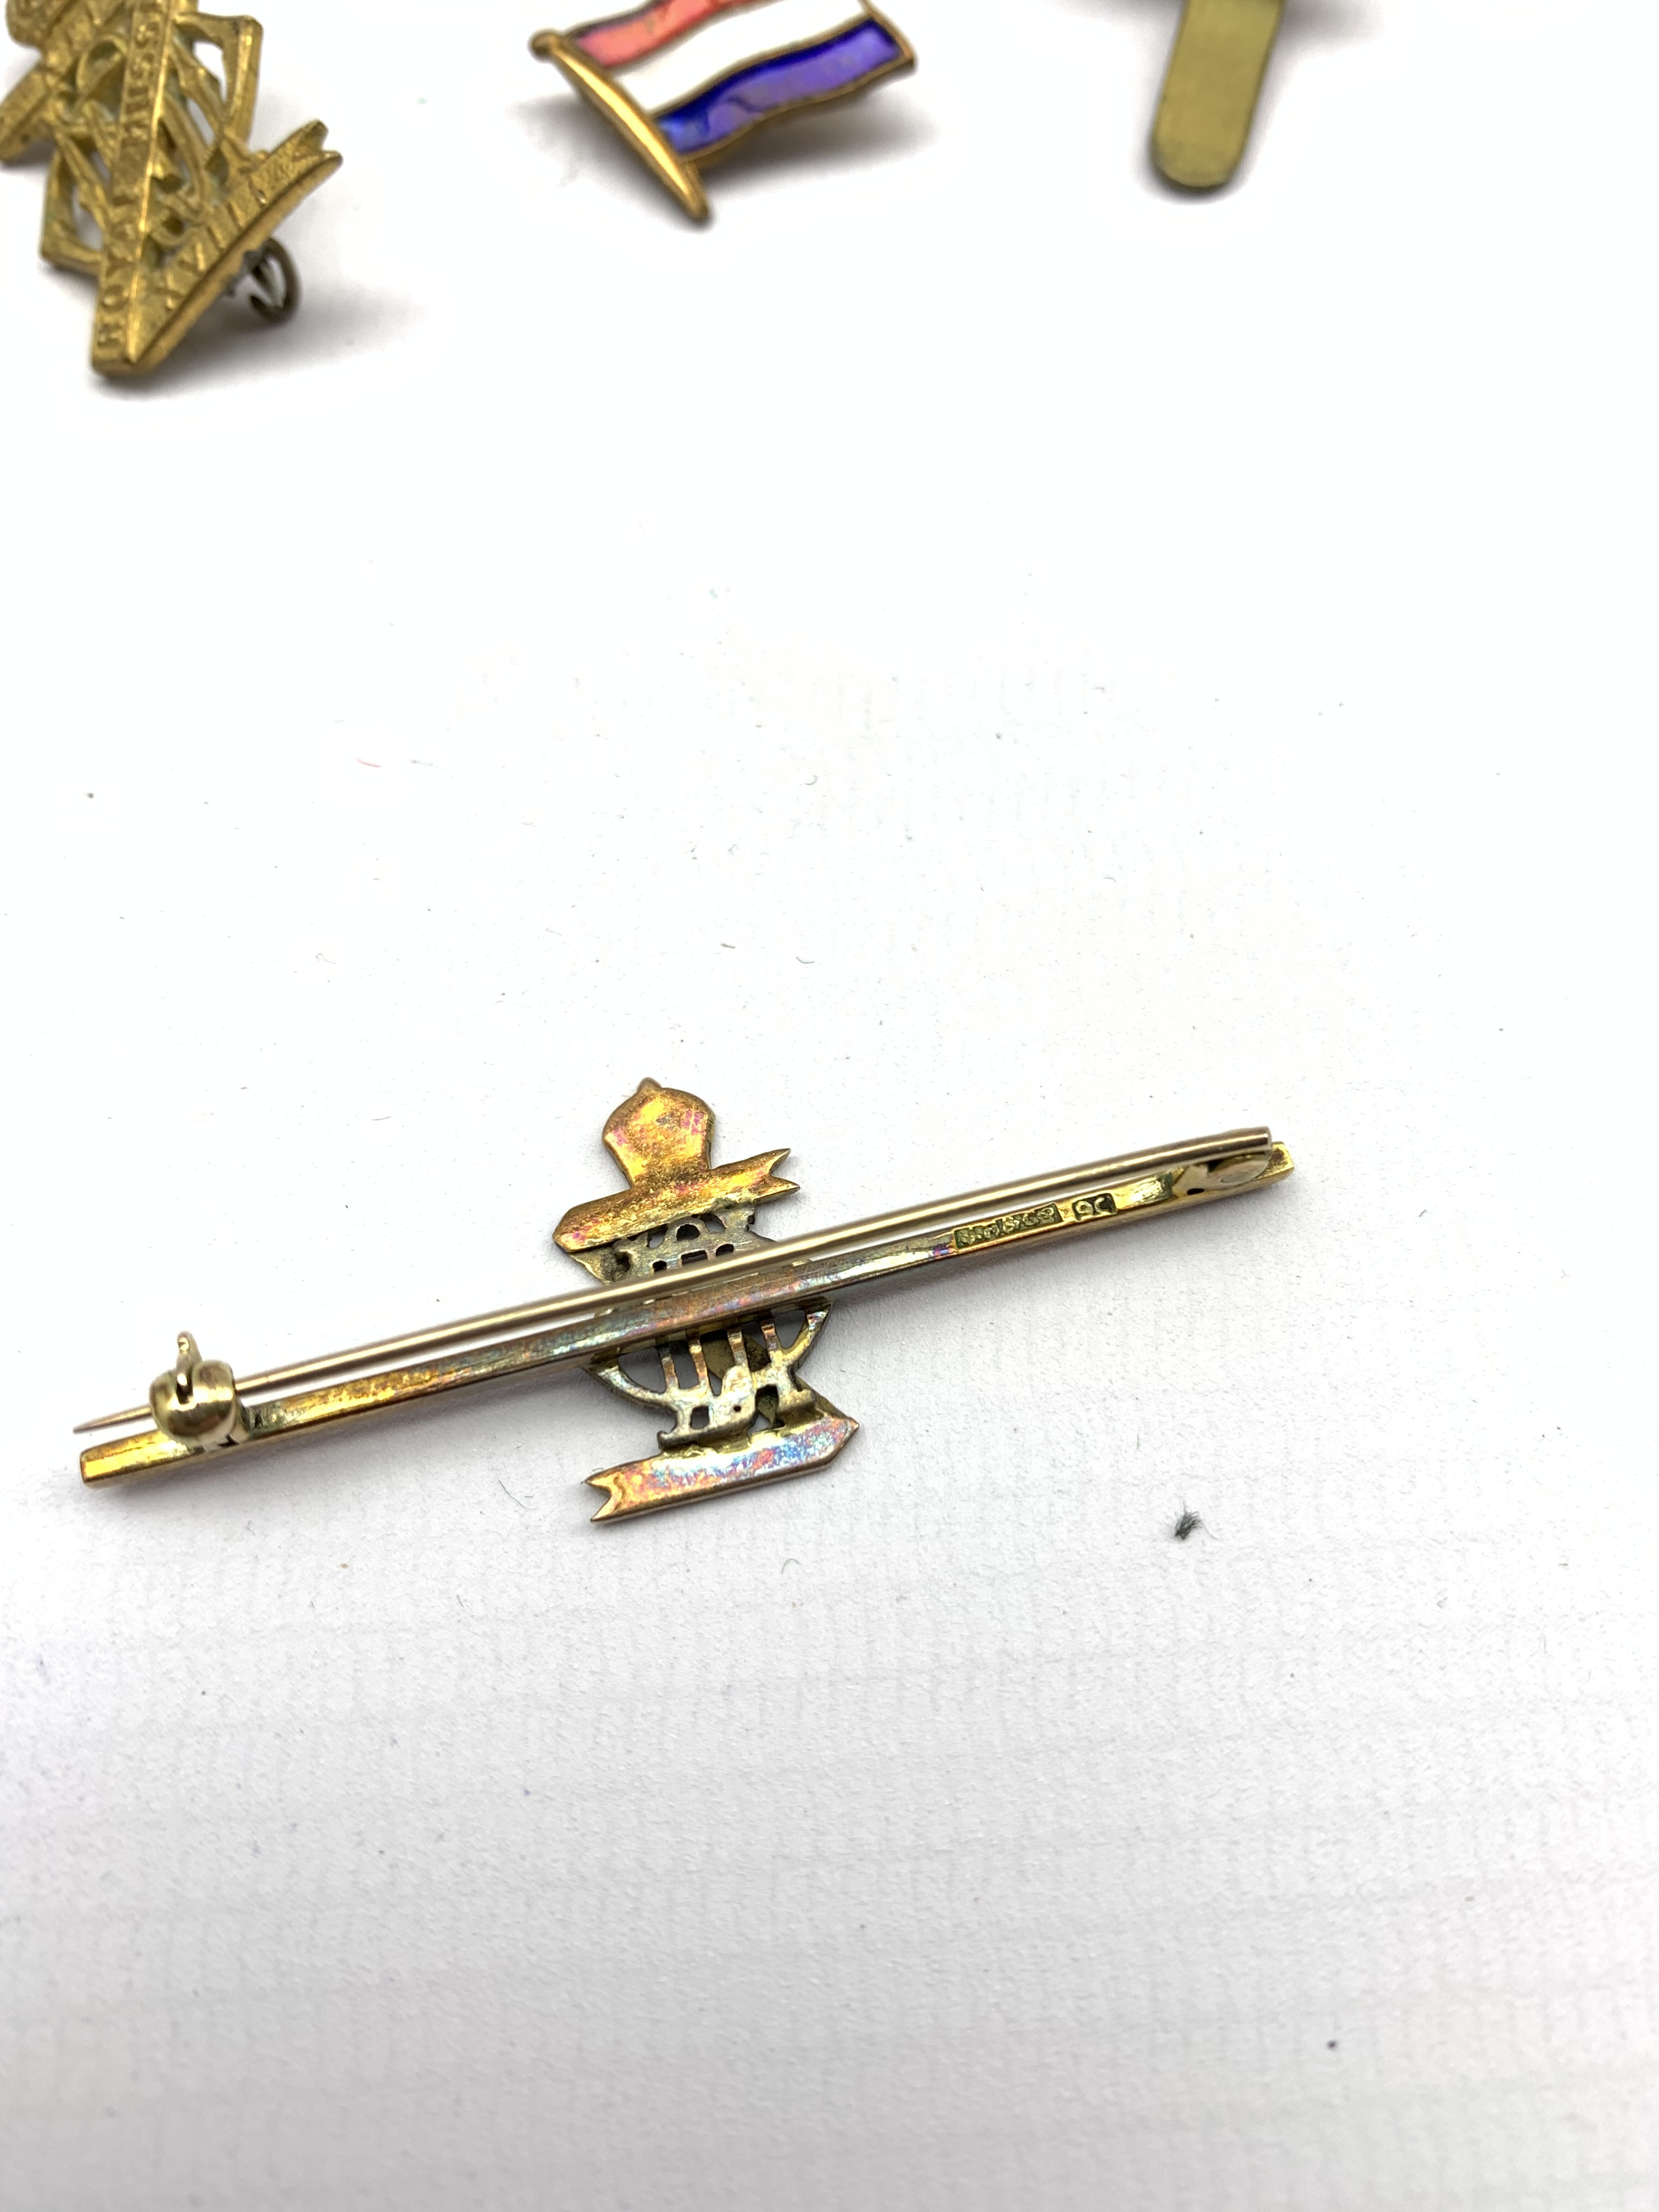 9ct gold and blue enamel brooch for XIII-XVIII Royal Hussars , four other Hussars brooches and clips - Image 10 of 15